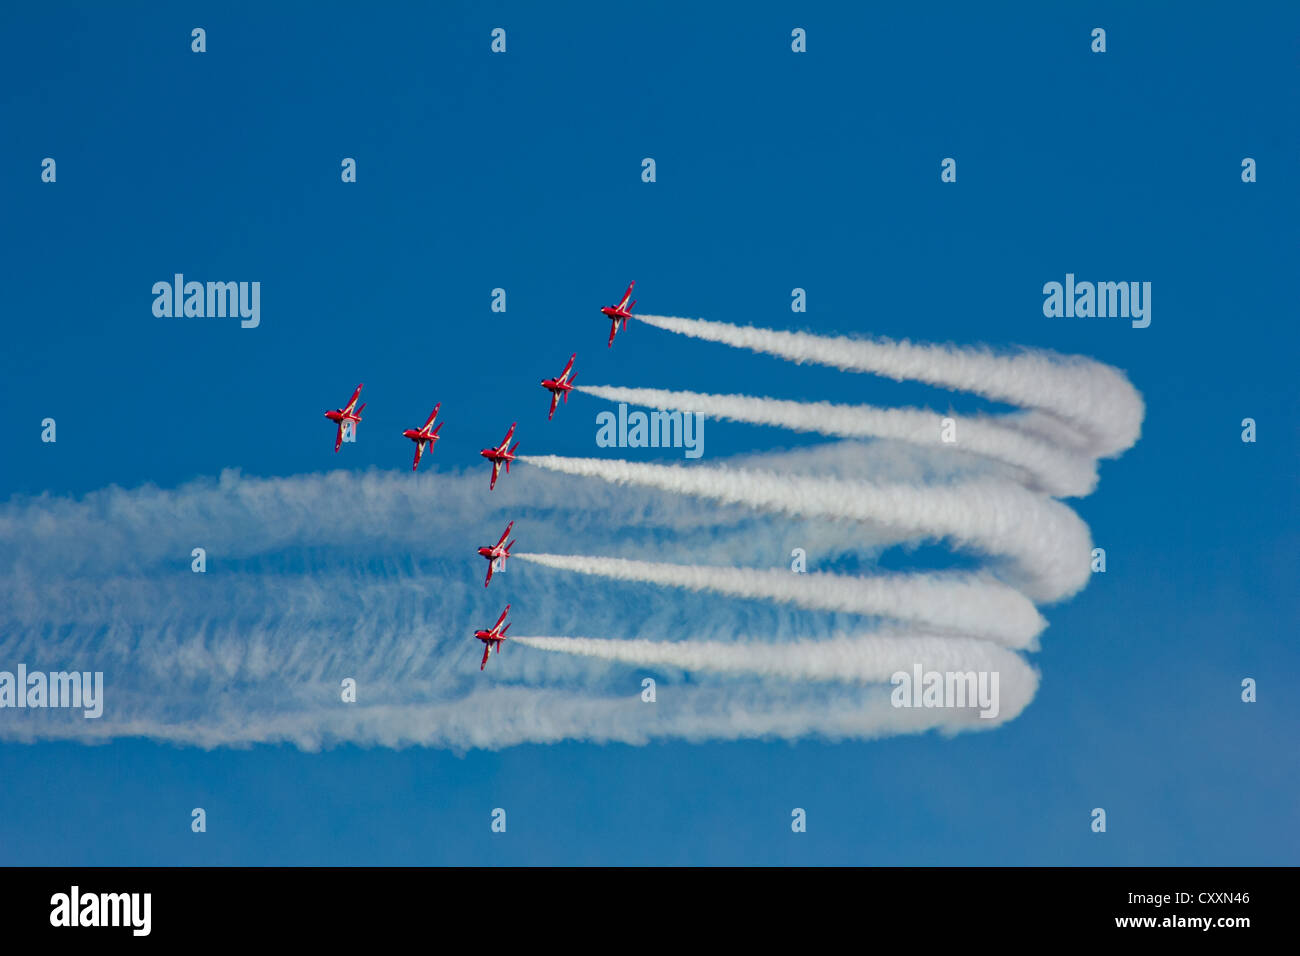 RAF Royal Air Force Aerobatic Team The Red Arrows - Stock Image